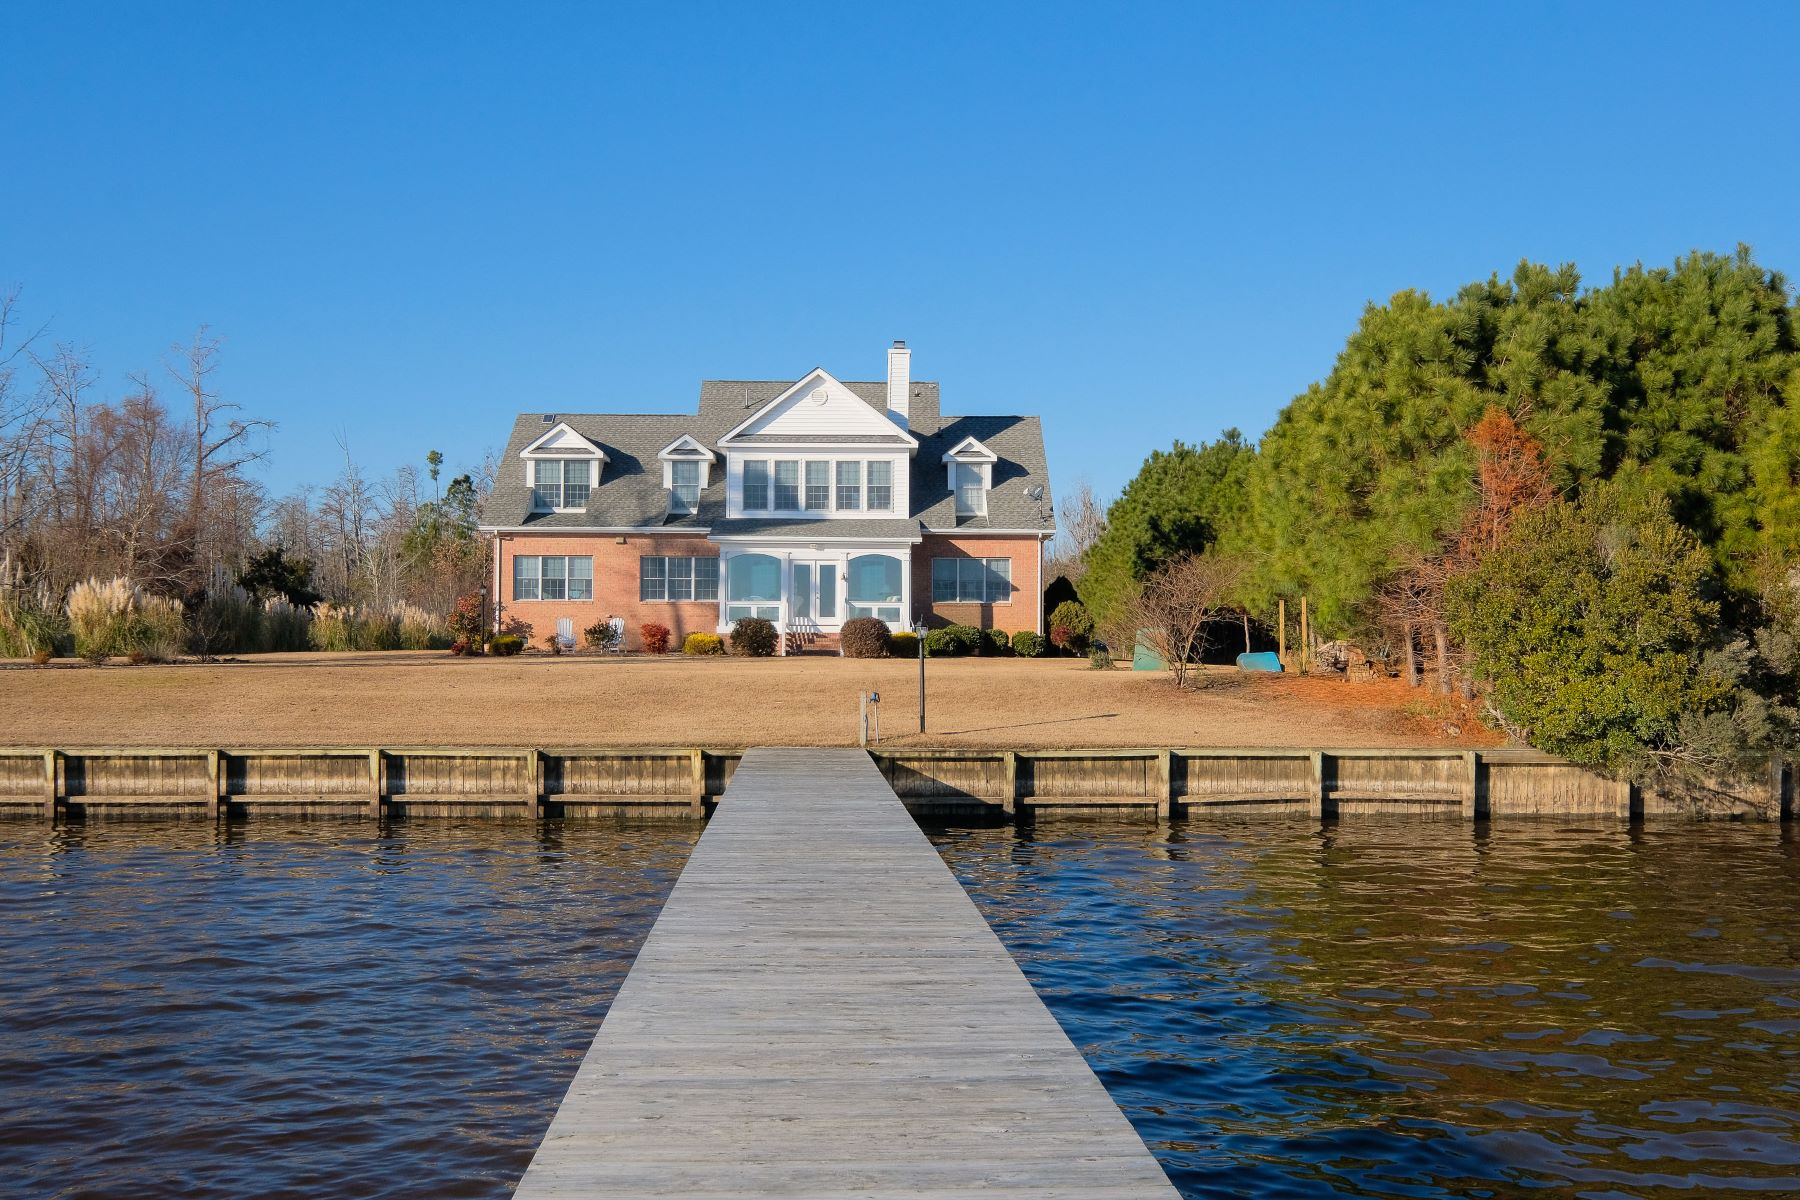 Single Family Home for Sale at SPACIOUS WATERFRONT HOME 144 Osprey Dr Edenton, North Carolina 27932 United States